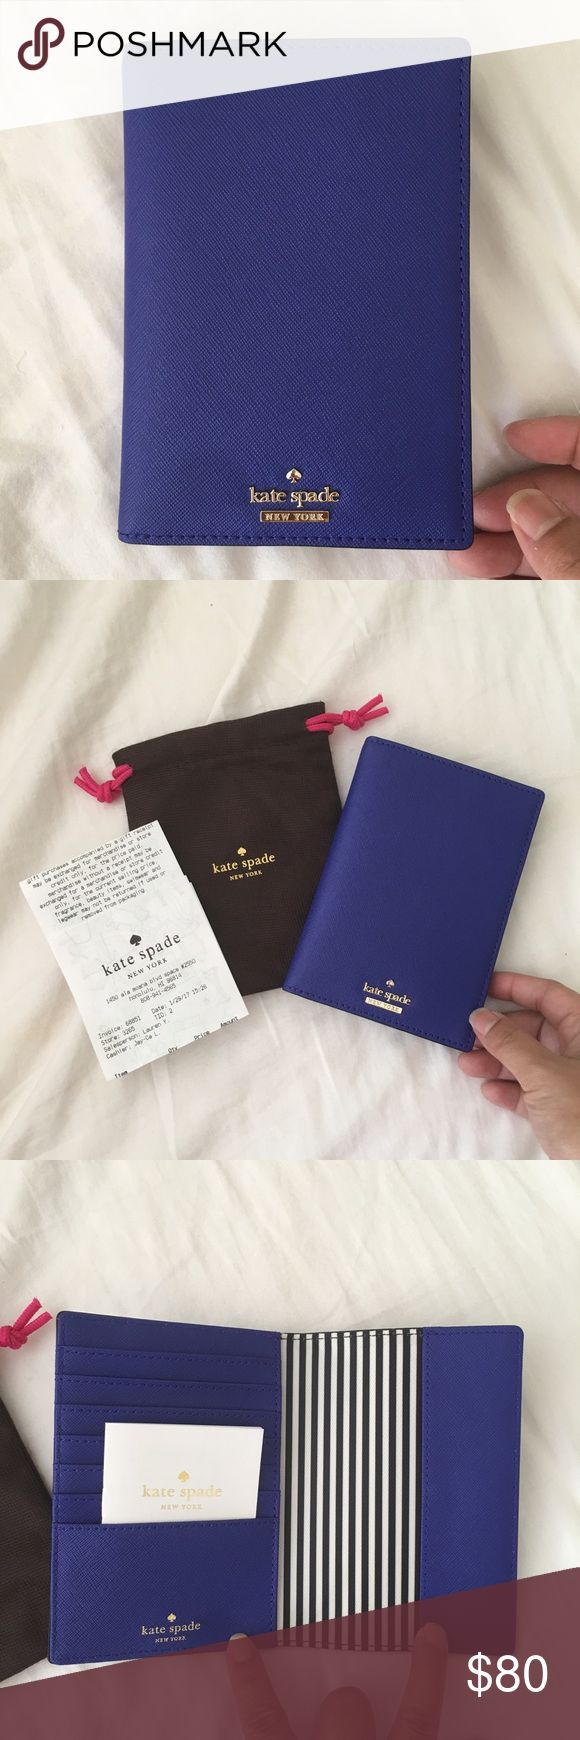 Authentic Kate Spade New York Passport card holder Authentic Kate Spade New York Passport card holder. Hold 7 cards and a passport. Brand new with tags. Decided to keep the red and sell the blue. Purchased a few weeks ago from Ala Moana Kate Spade. No trades kate spade Bags Wallets